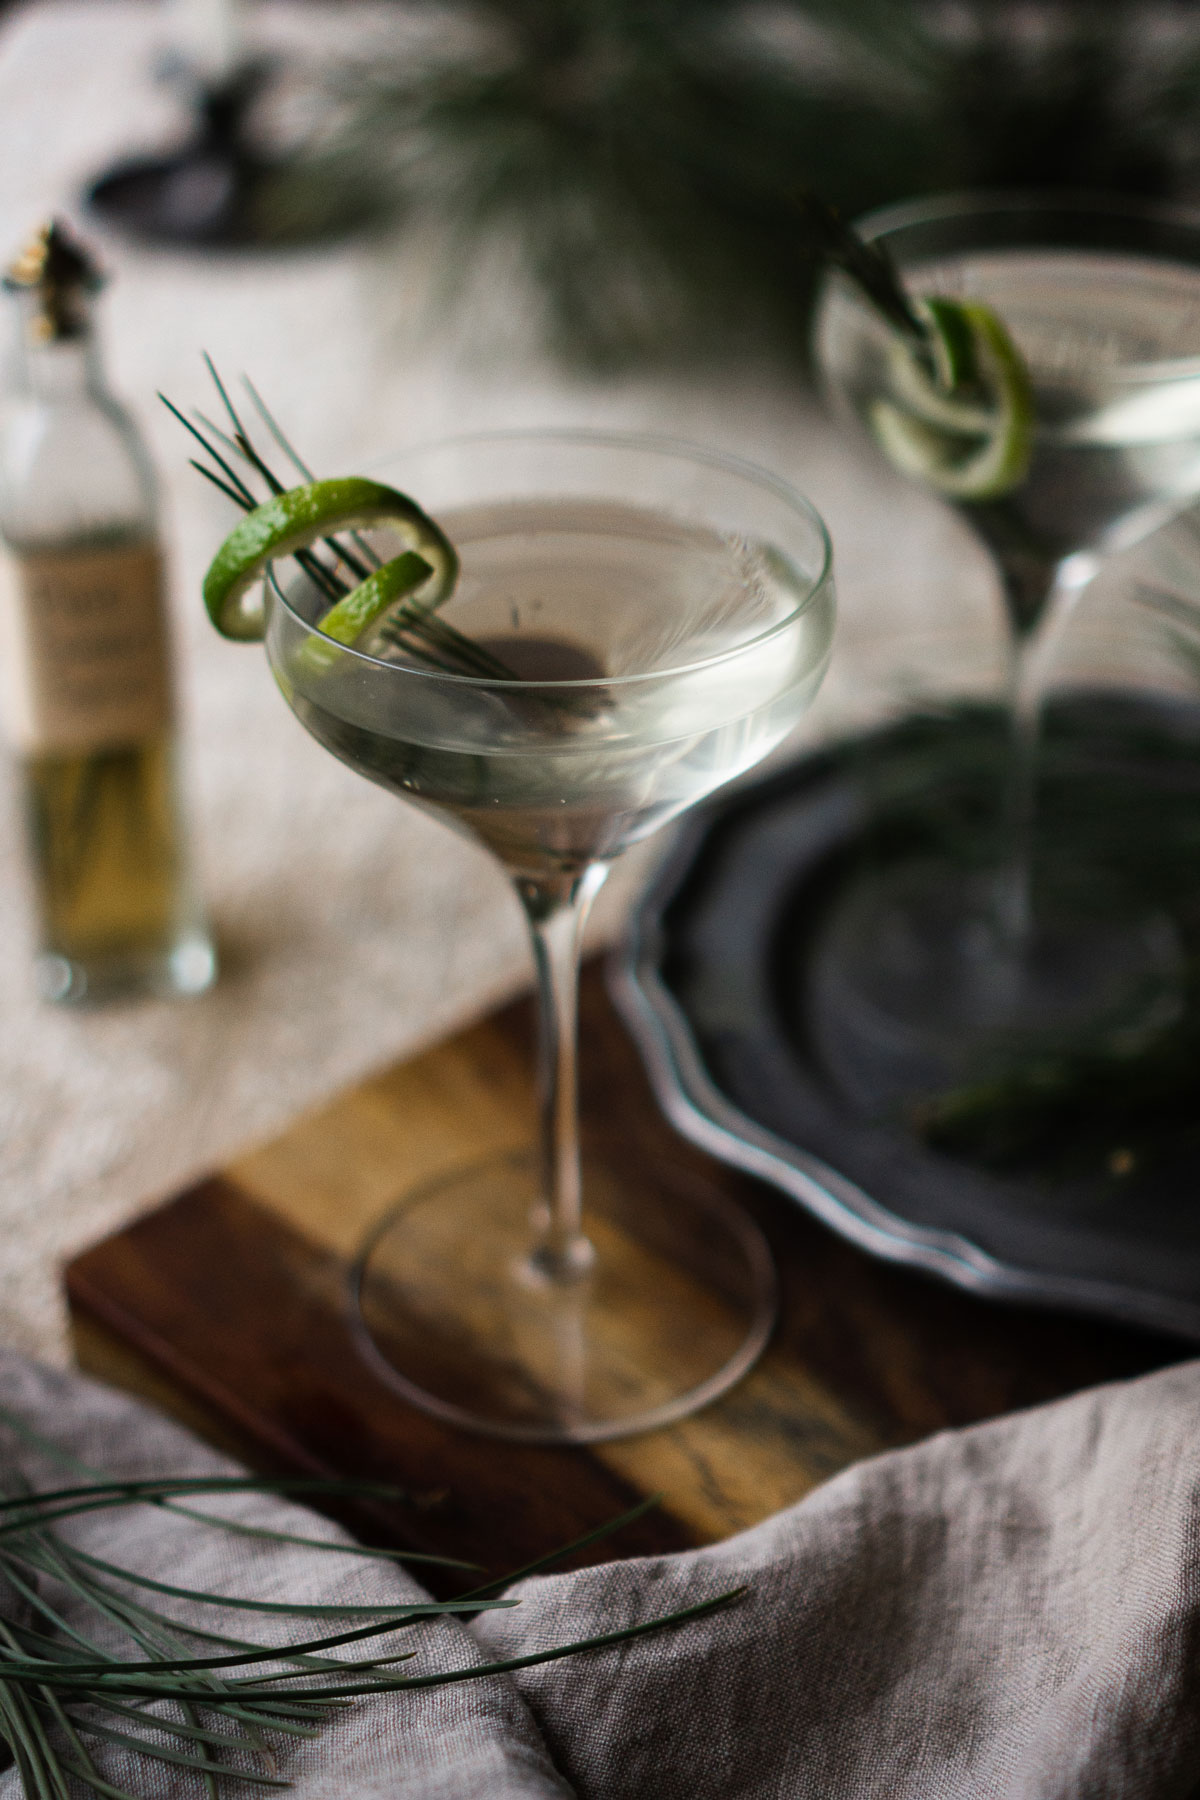 pine needle gimlet on a wooden cutting board